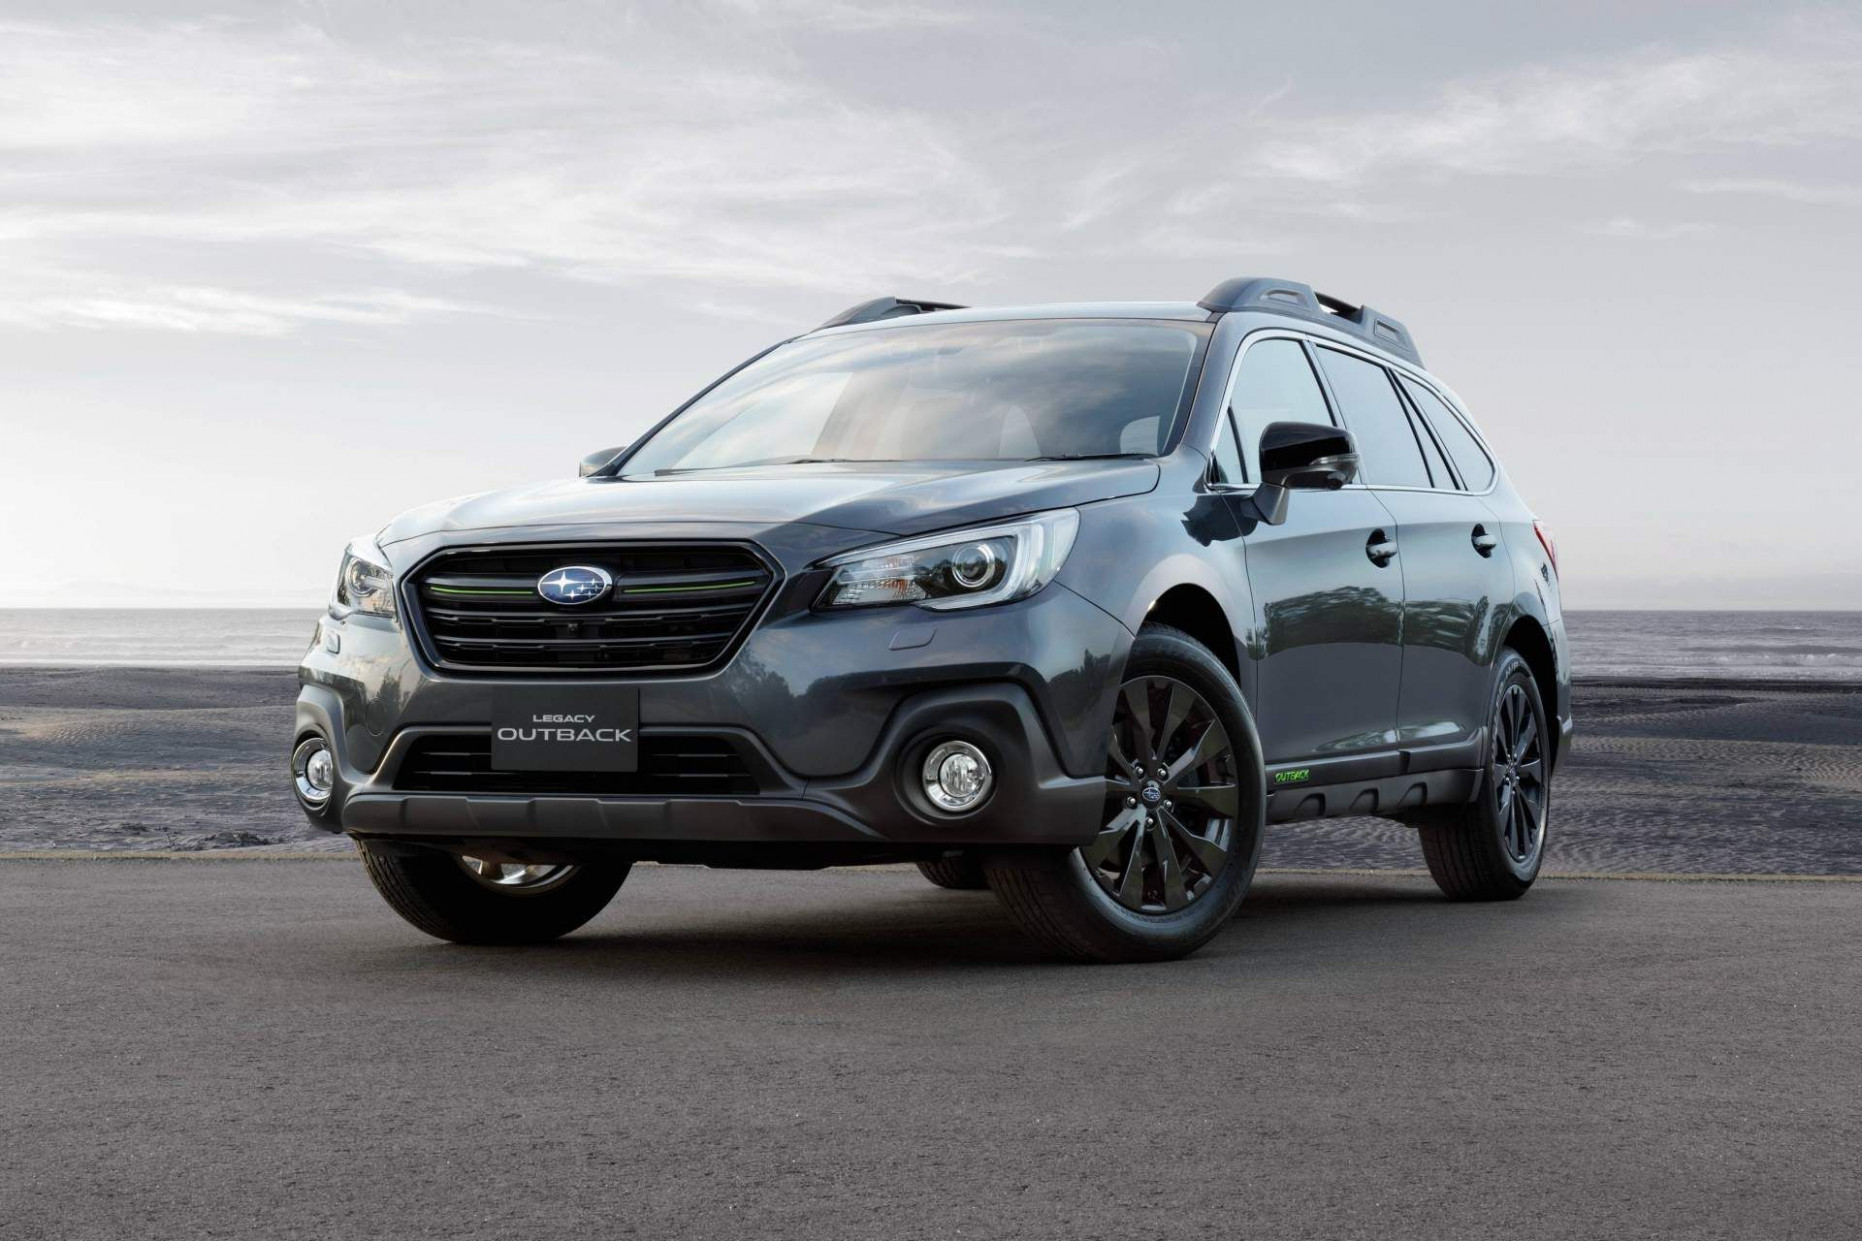 New Subaru Outback Is Coming This Year With 10 Legacy Tech ...